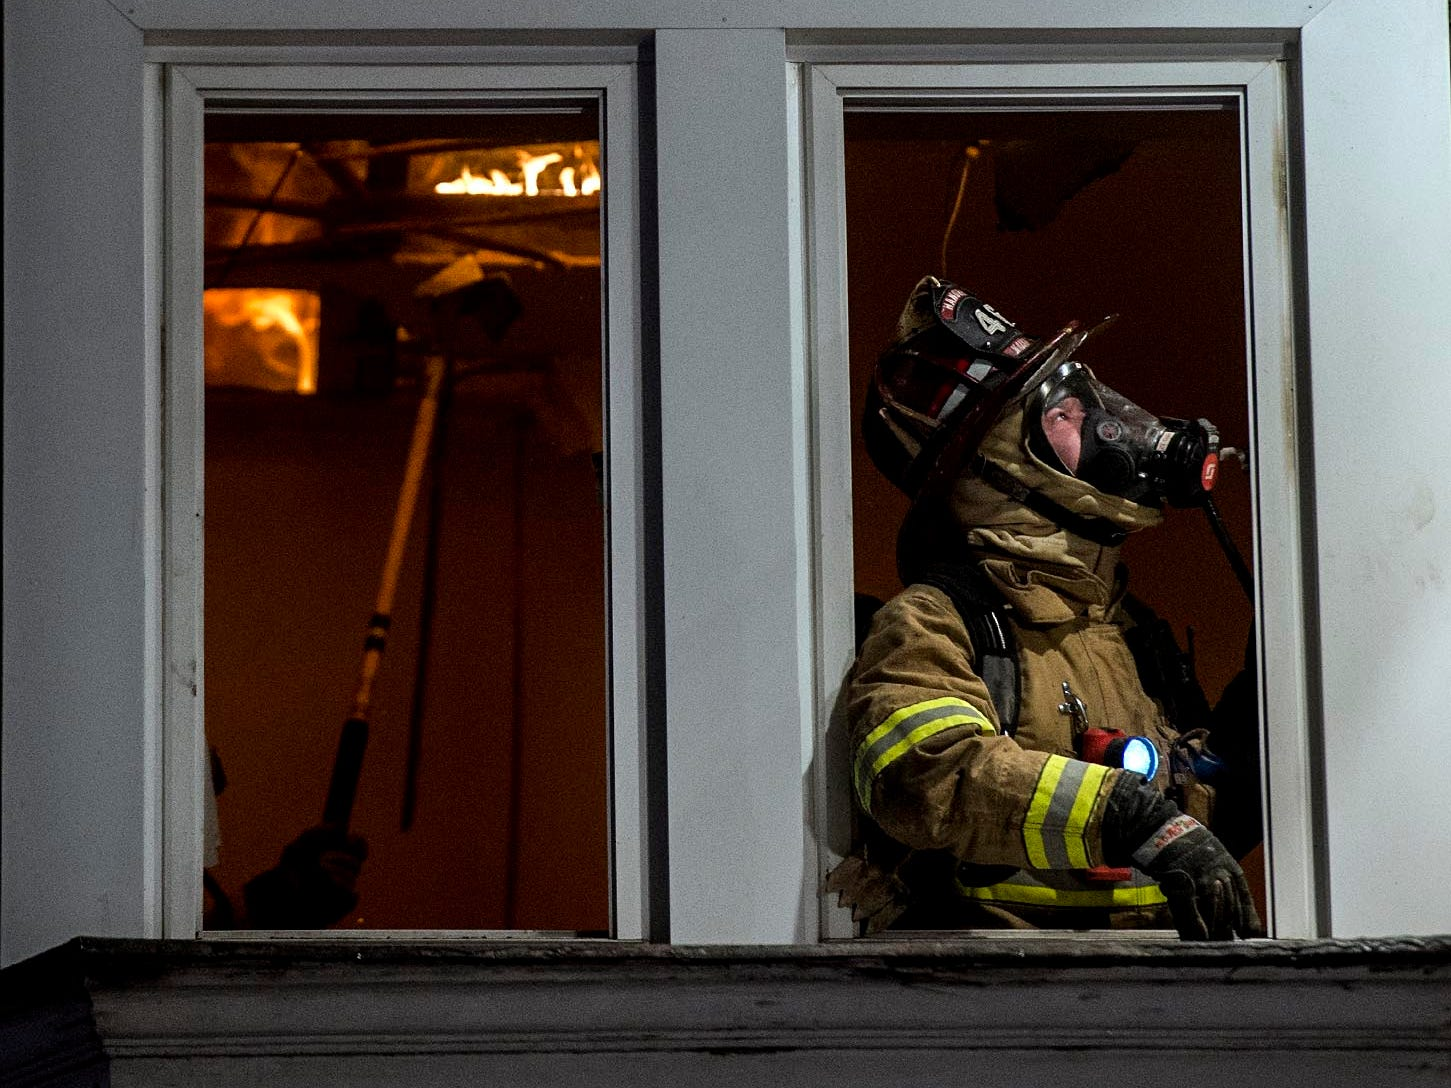 Fire fighters work on containing a house fire at 340 E. Walnut Street in Hanover Borough, Friday, February 2, 2018. Multiple families were displaced by the fire, which was dispatched at 1:28 a.m. Over 20 units responded to fight the blaze.